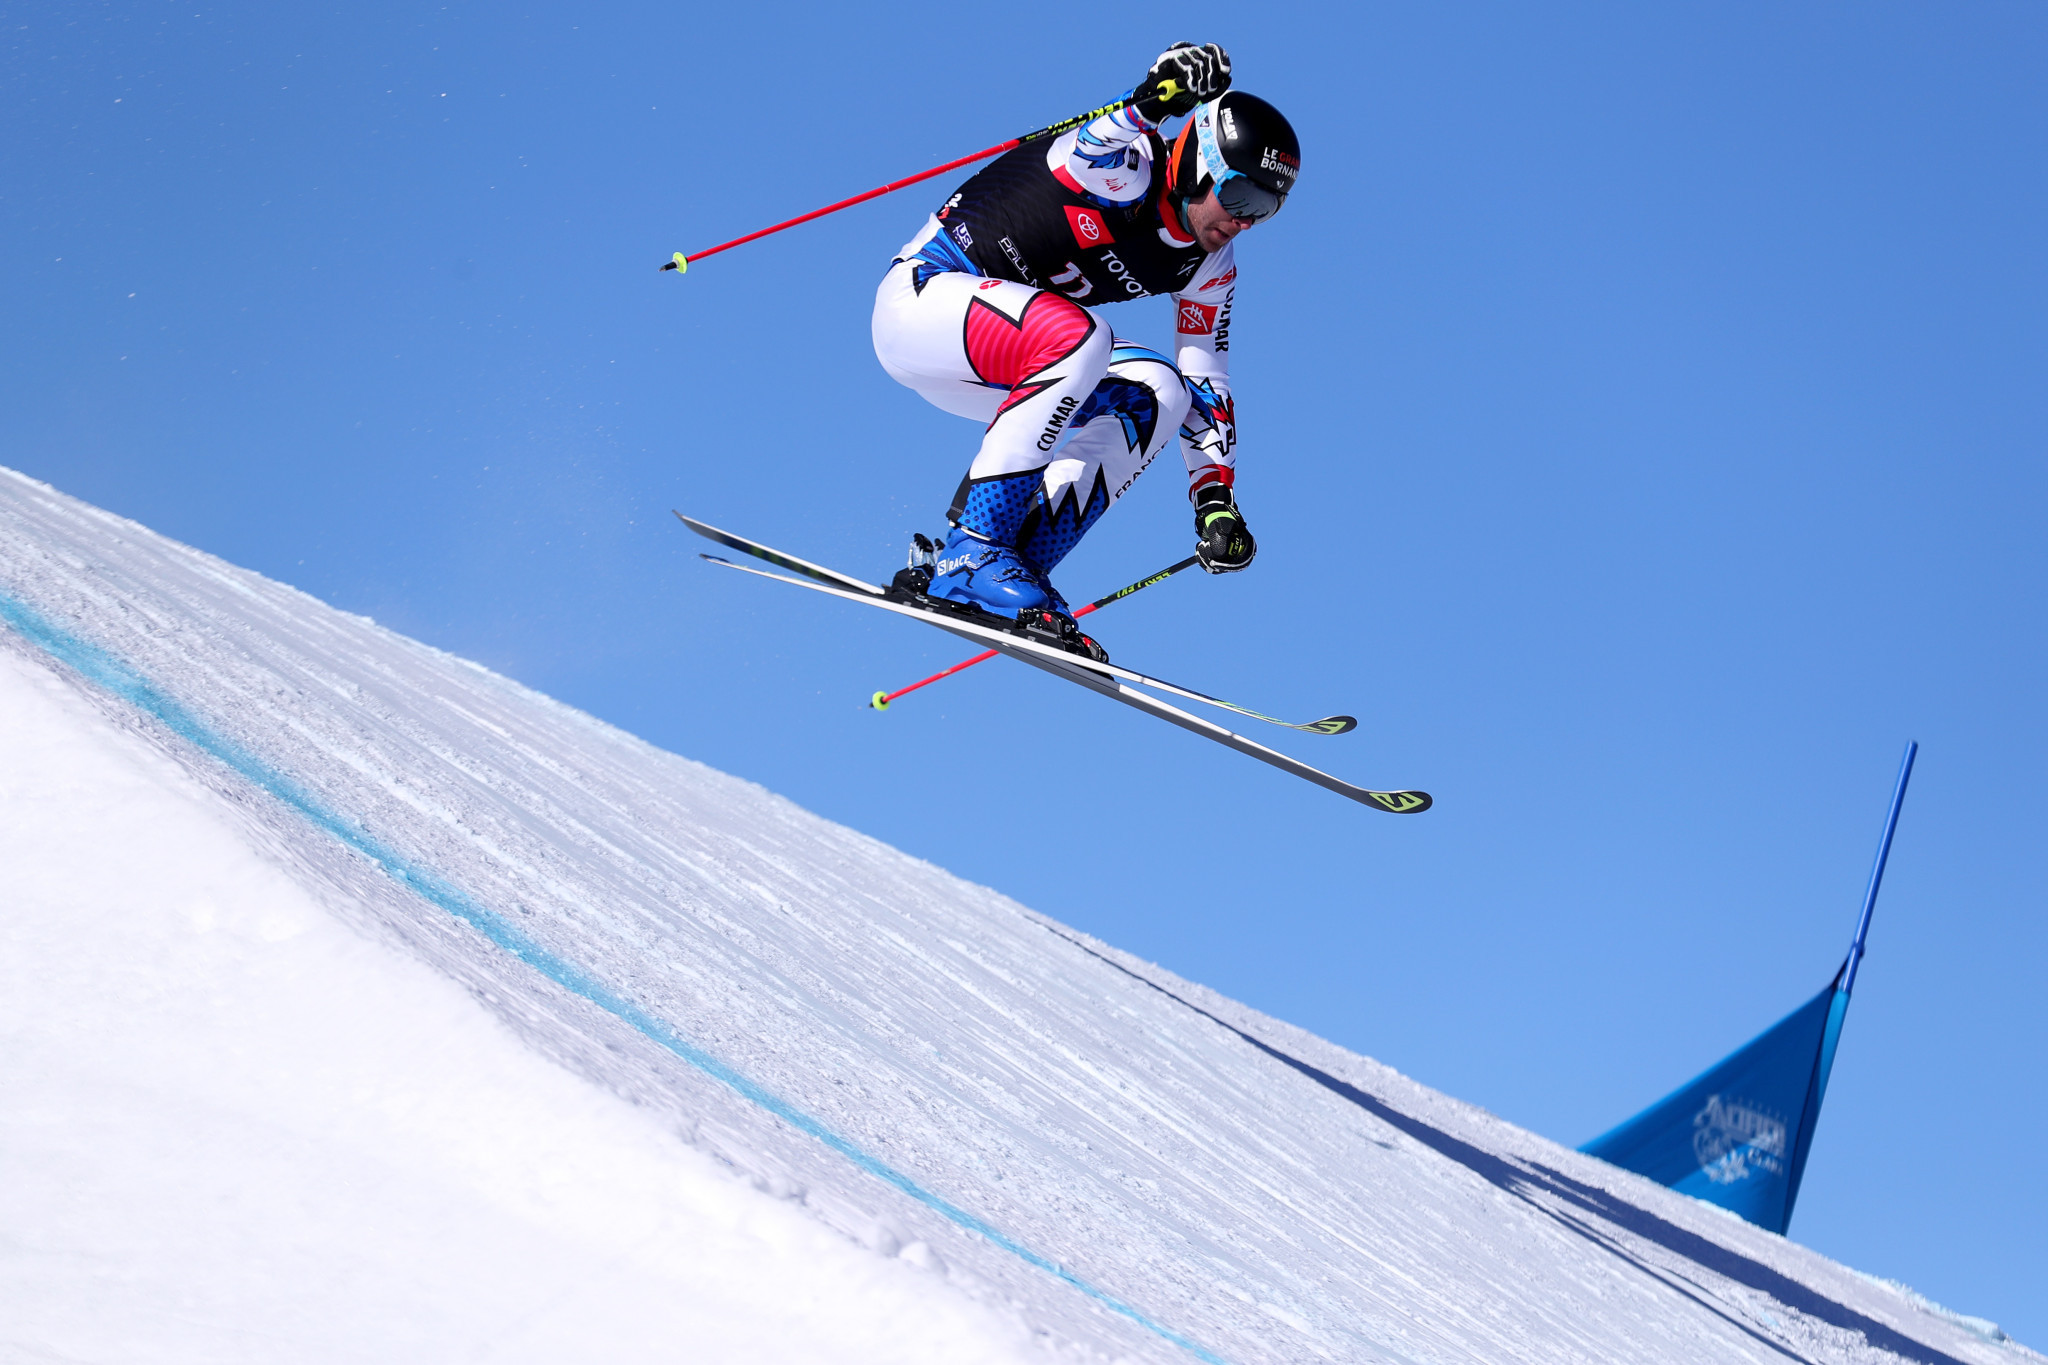 France's Bastien Midol will be looking to end an impressive FIS Ski Cross World Cup season on a high in Veysonnaz ©Getty Images